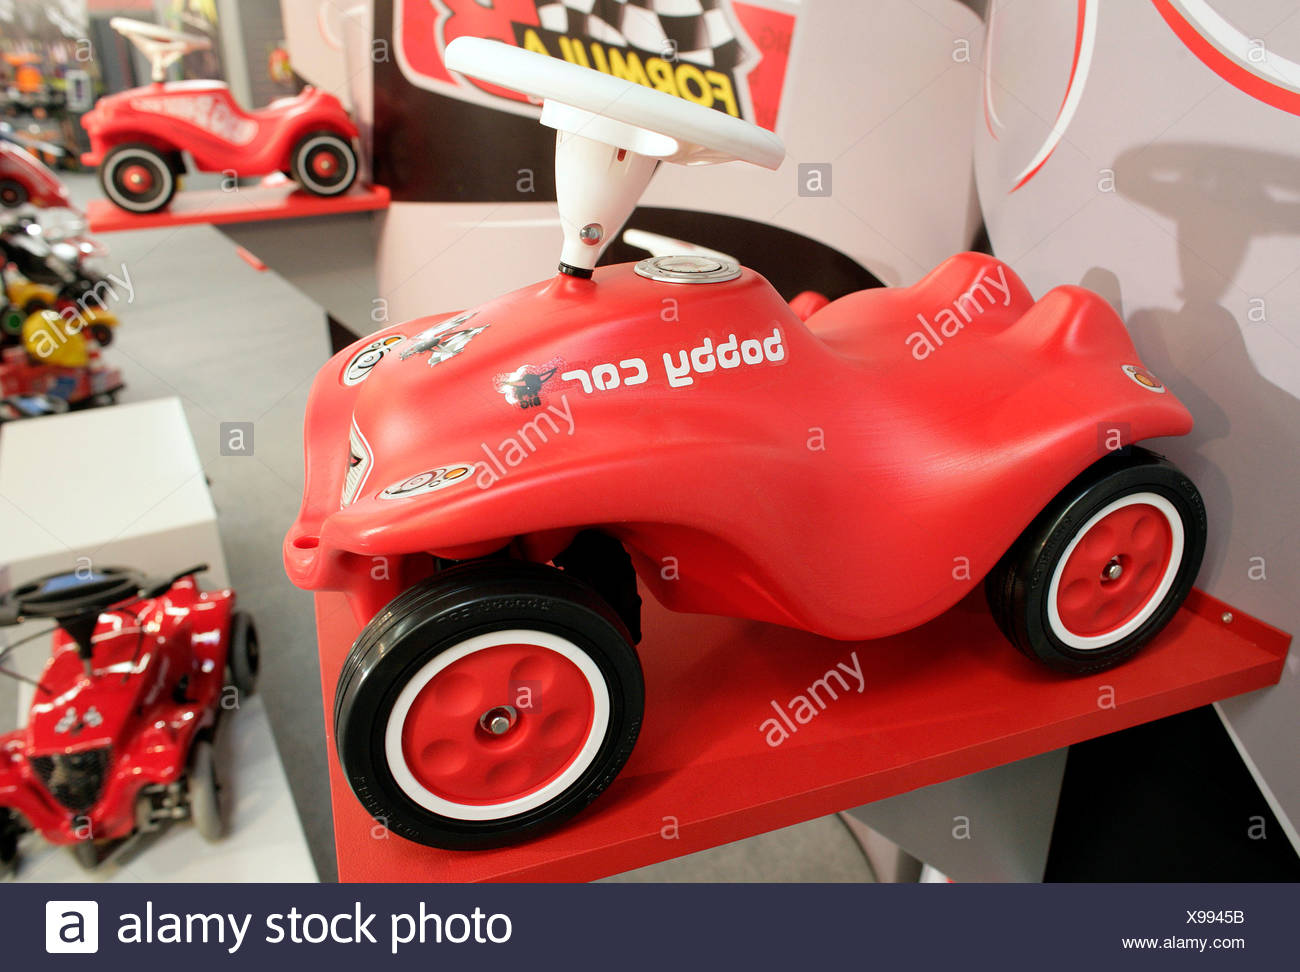 Das legendäre Bobby-Car von Big Spielwarenfabrik in Nürnberg International Toy Fair 2006 in Nürnberg, Bayern, Deutschland, Eu Stockbild